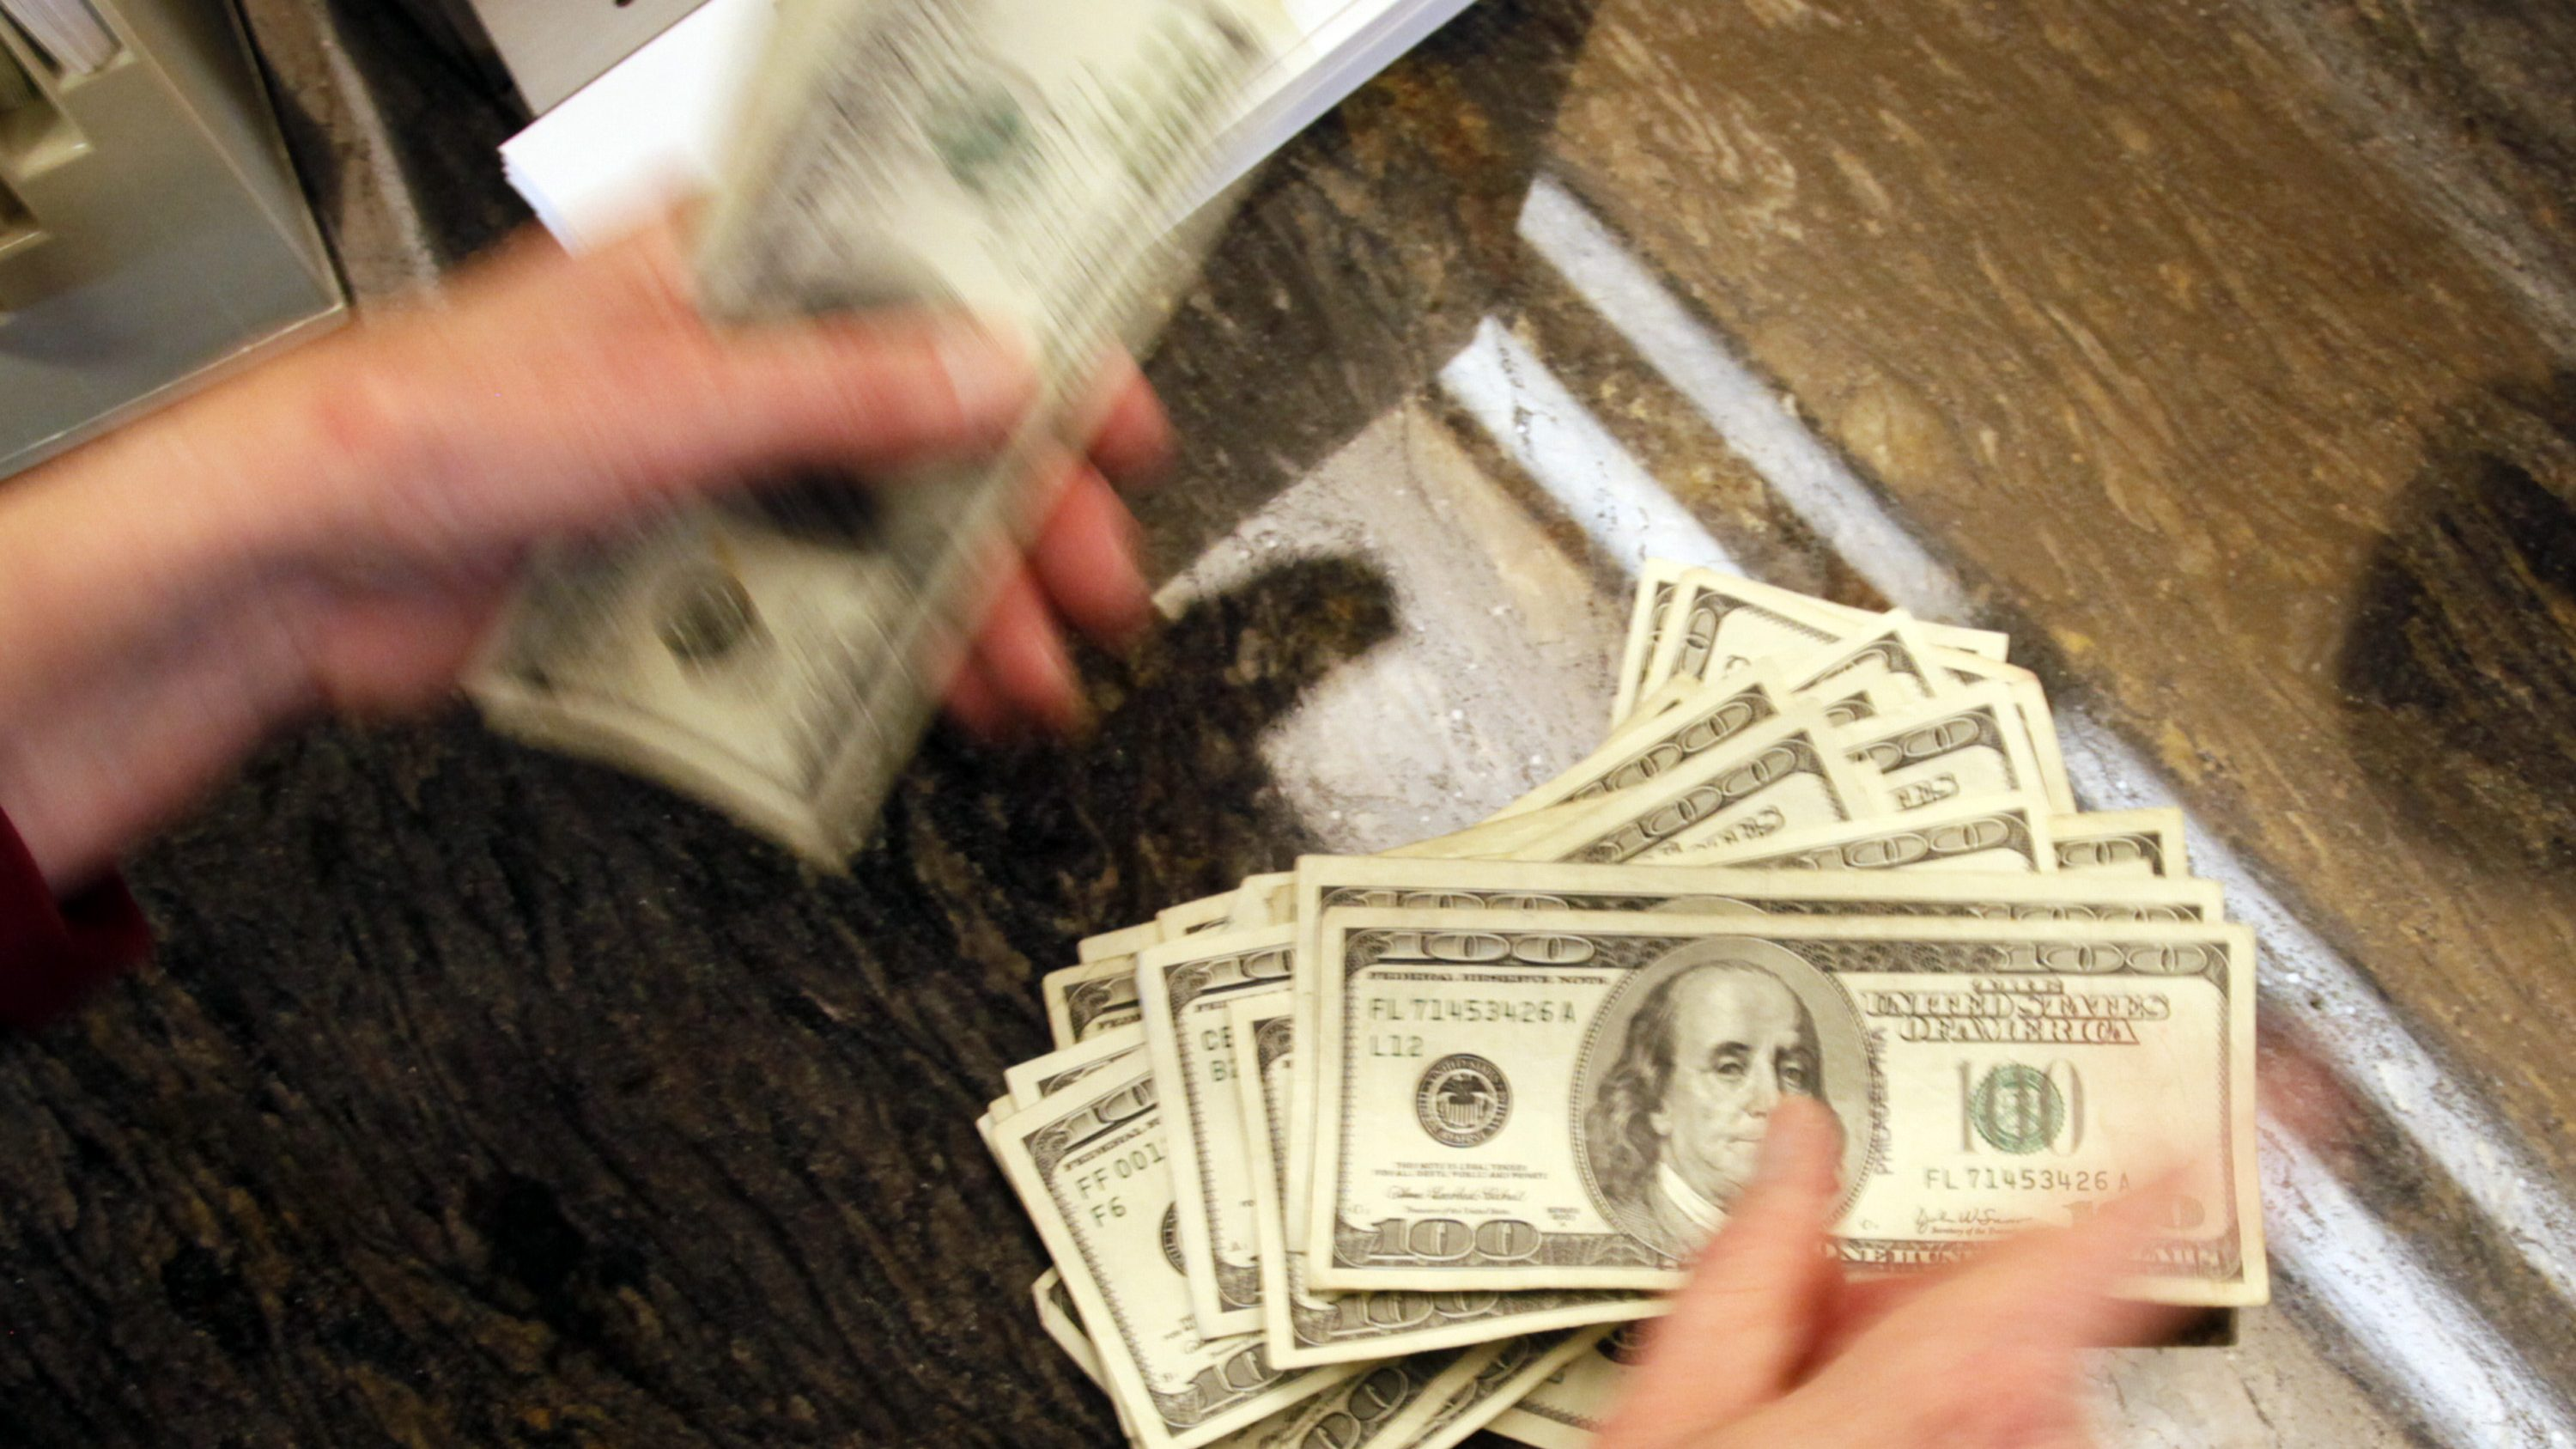 Four thousand U.S. dollars are counted out by a banker counting currency at a bank in Westminster, Colorado November 3, 2009.